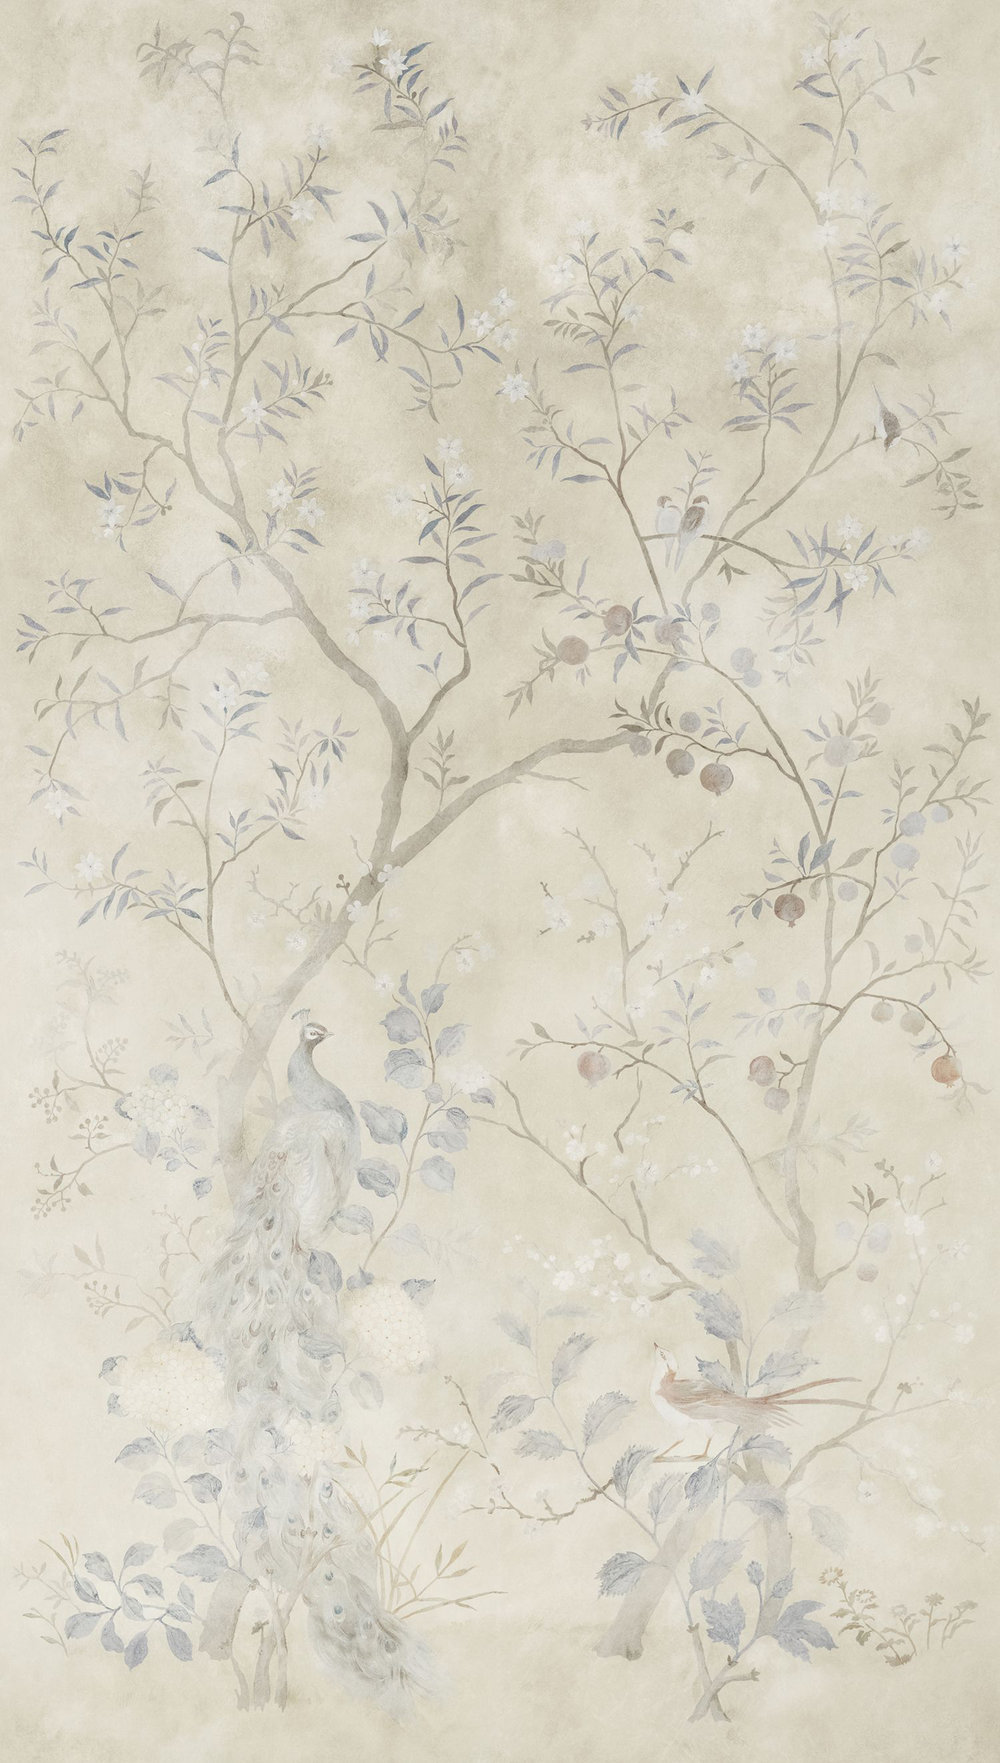 rotherby panels a b by zoffany indienne wallpaper directzoffany rotherby panels a b indienne mural main image